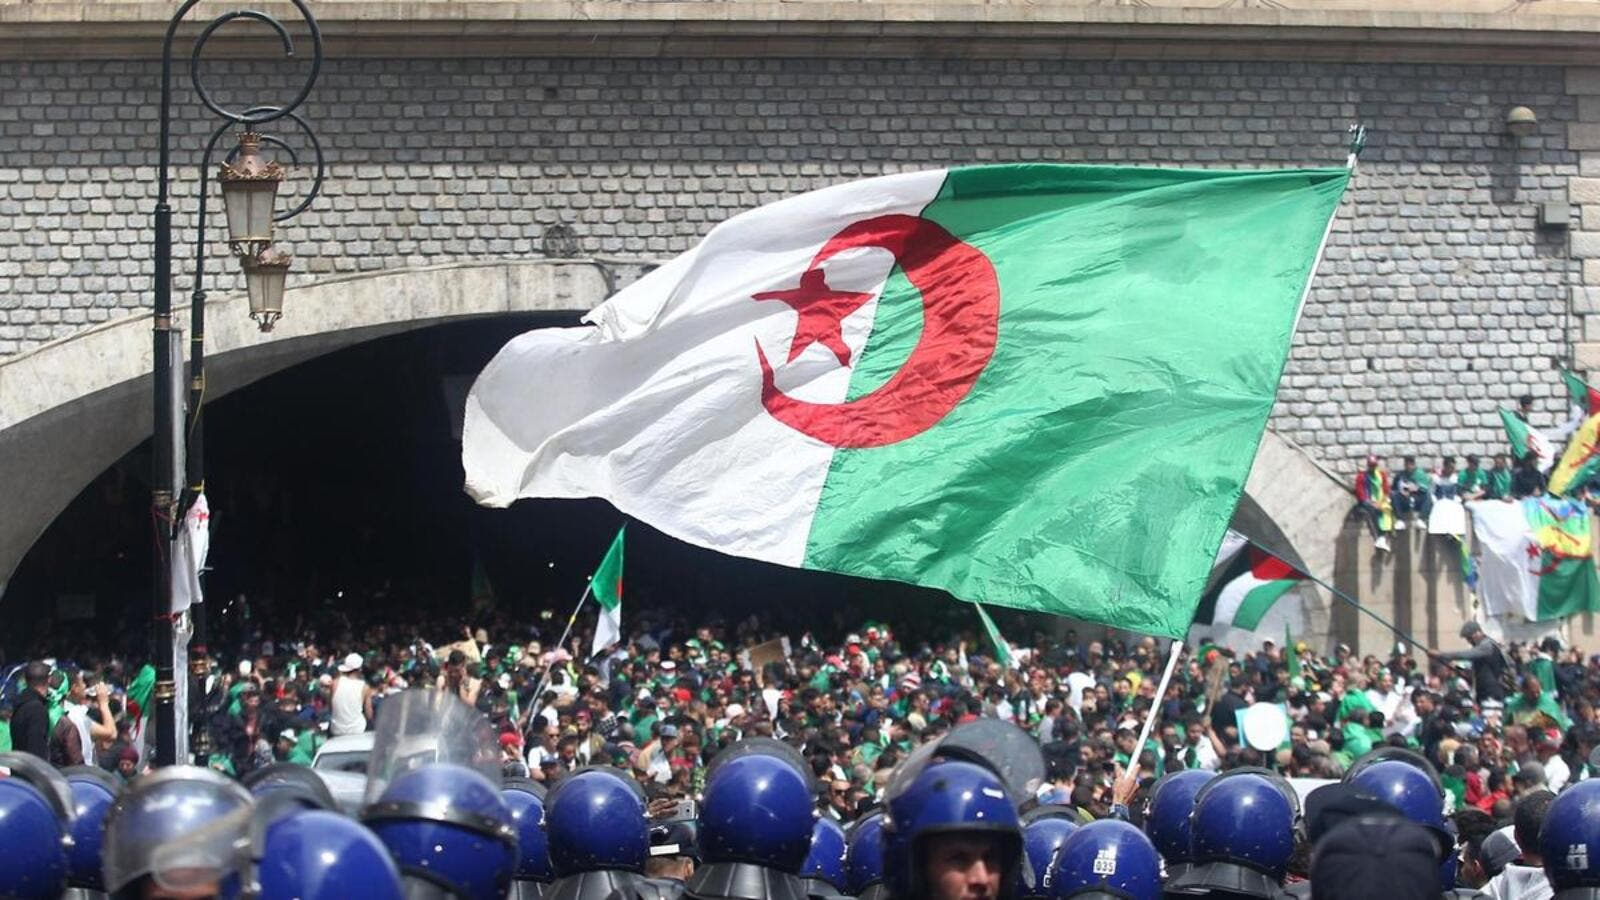 Algerian protesters wave a national flag as security forces stand guard during an an anti-government demonstration in Algiers on April 12, 2019. AFP